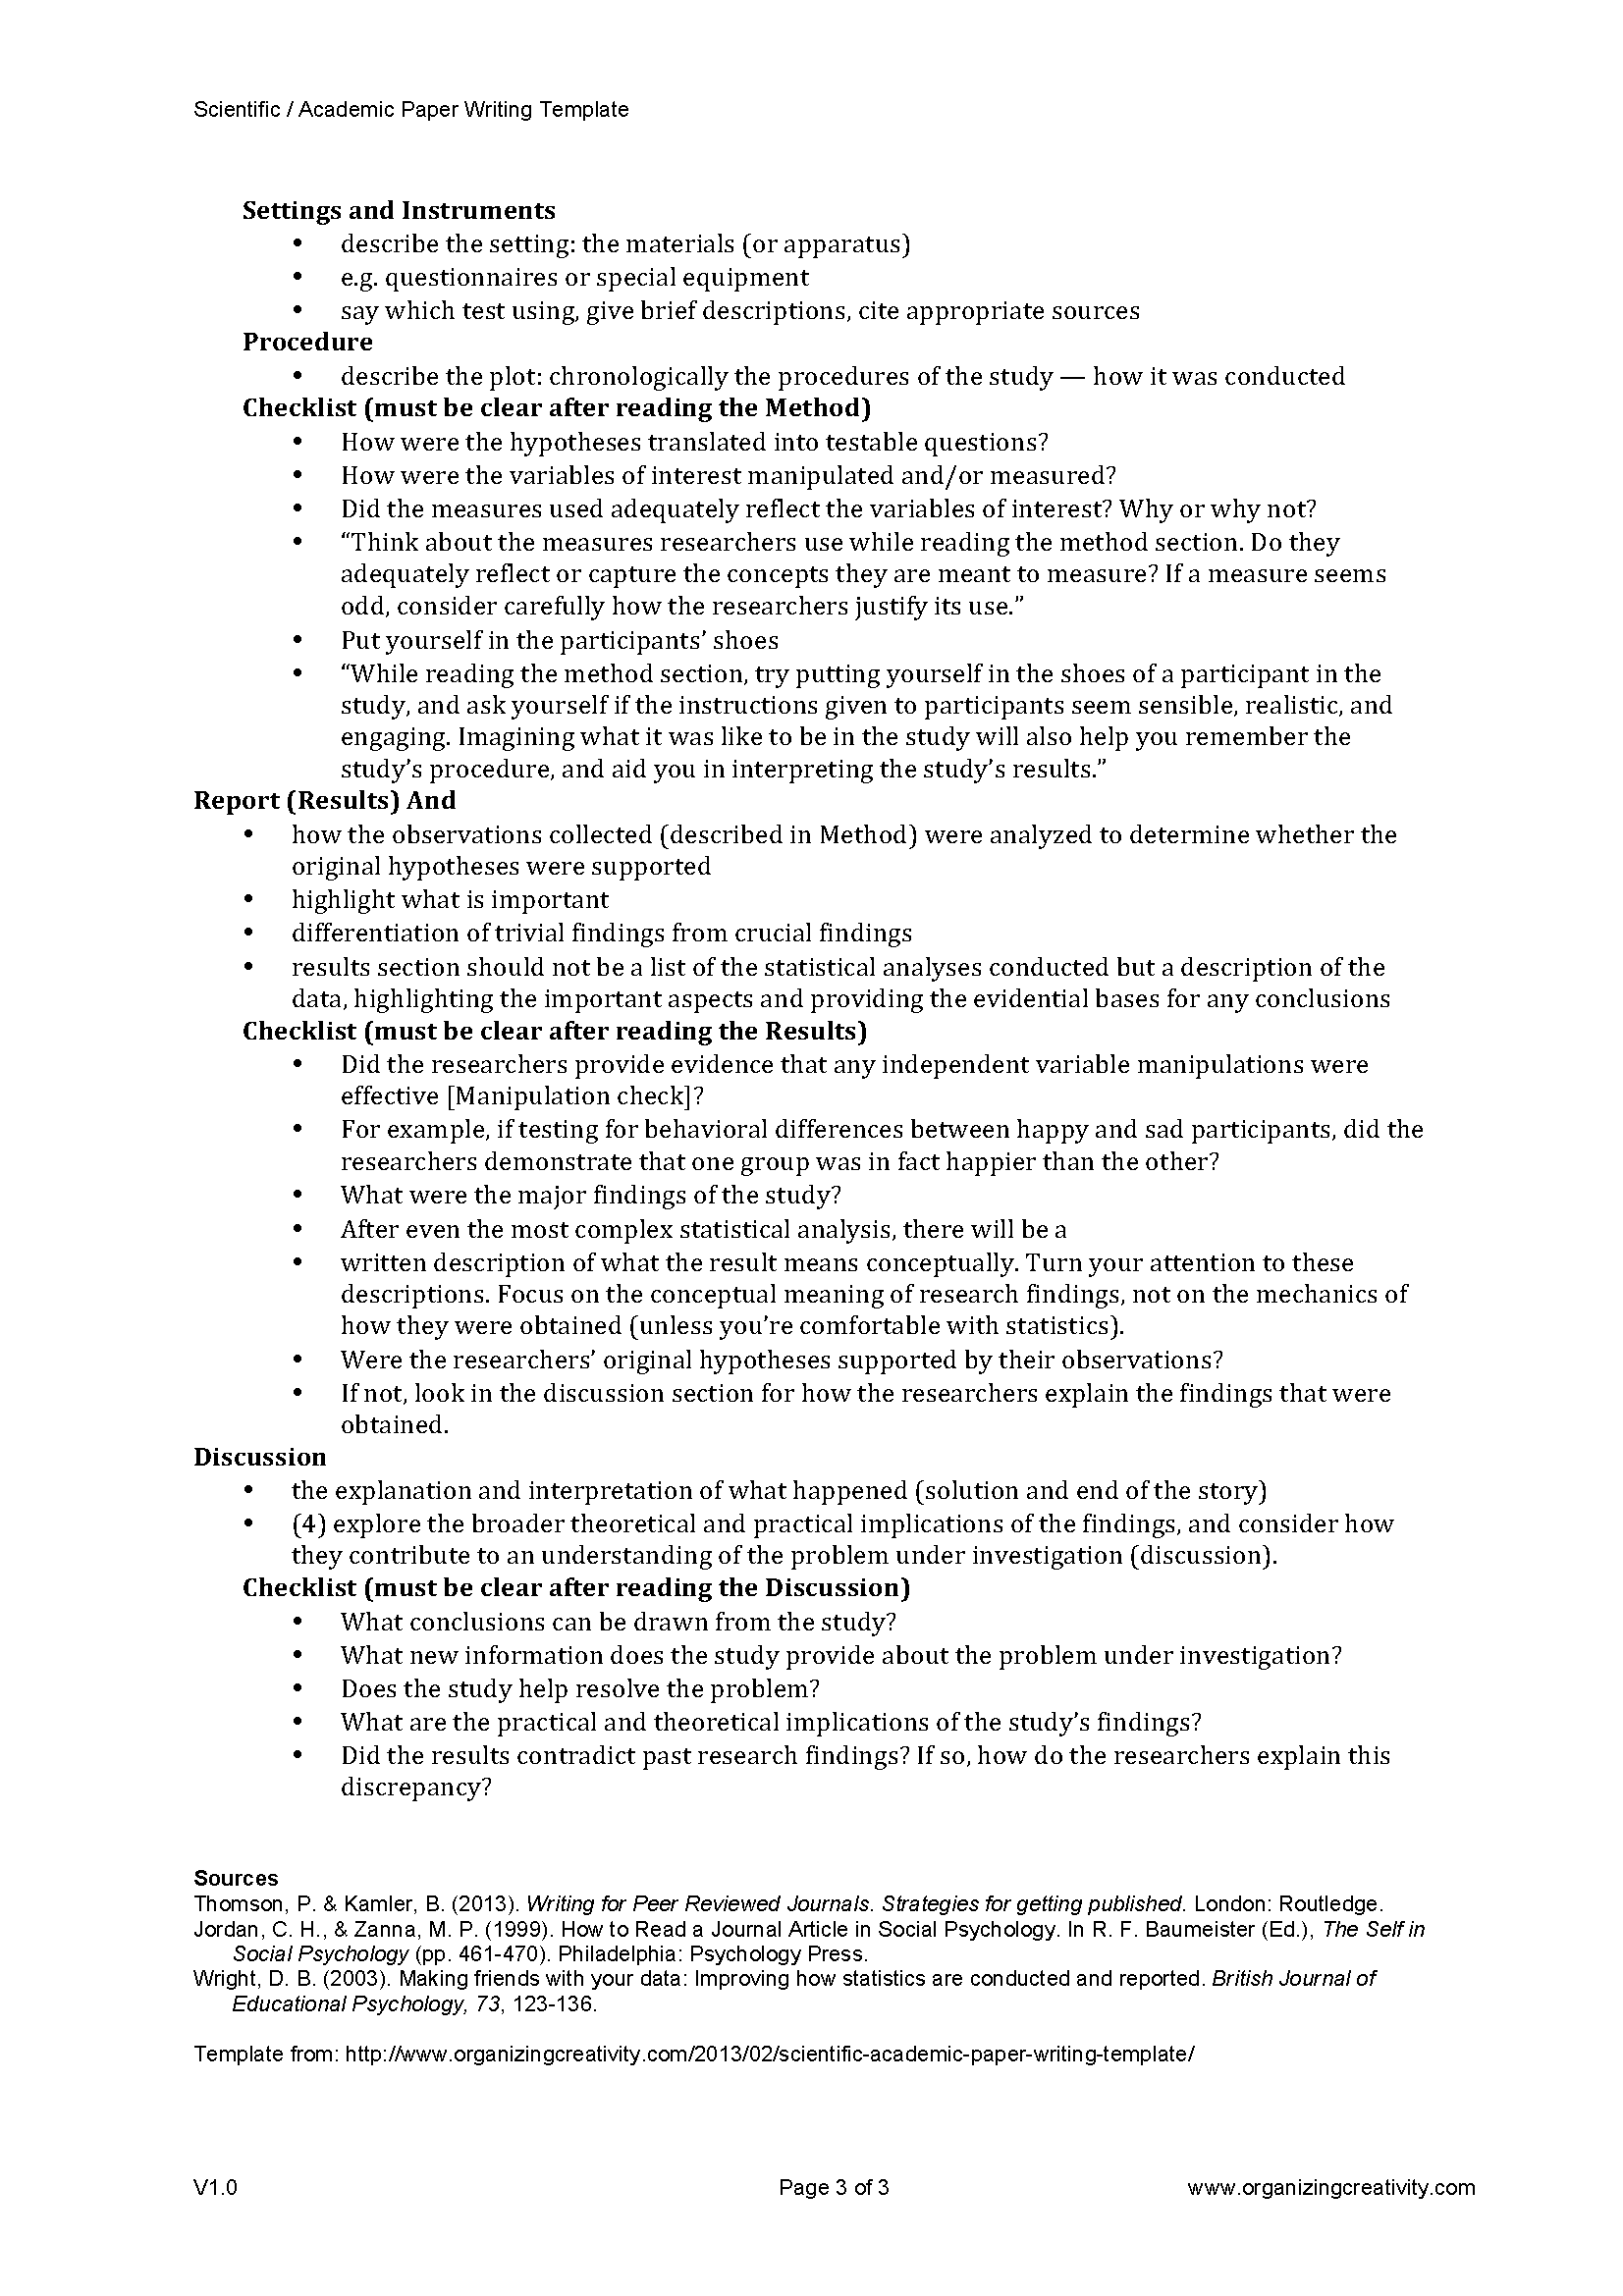 Scientific Academic Paper Writing Template Page 1